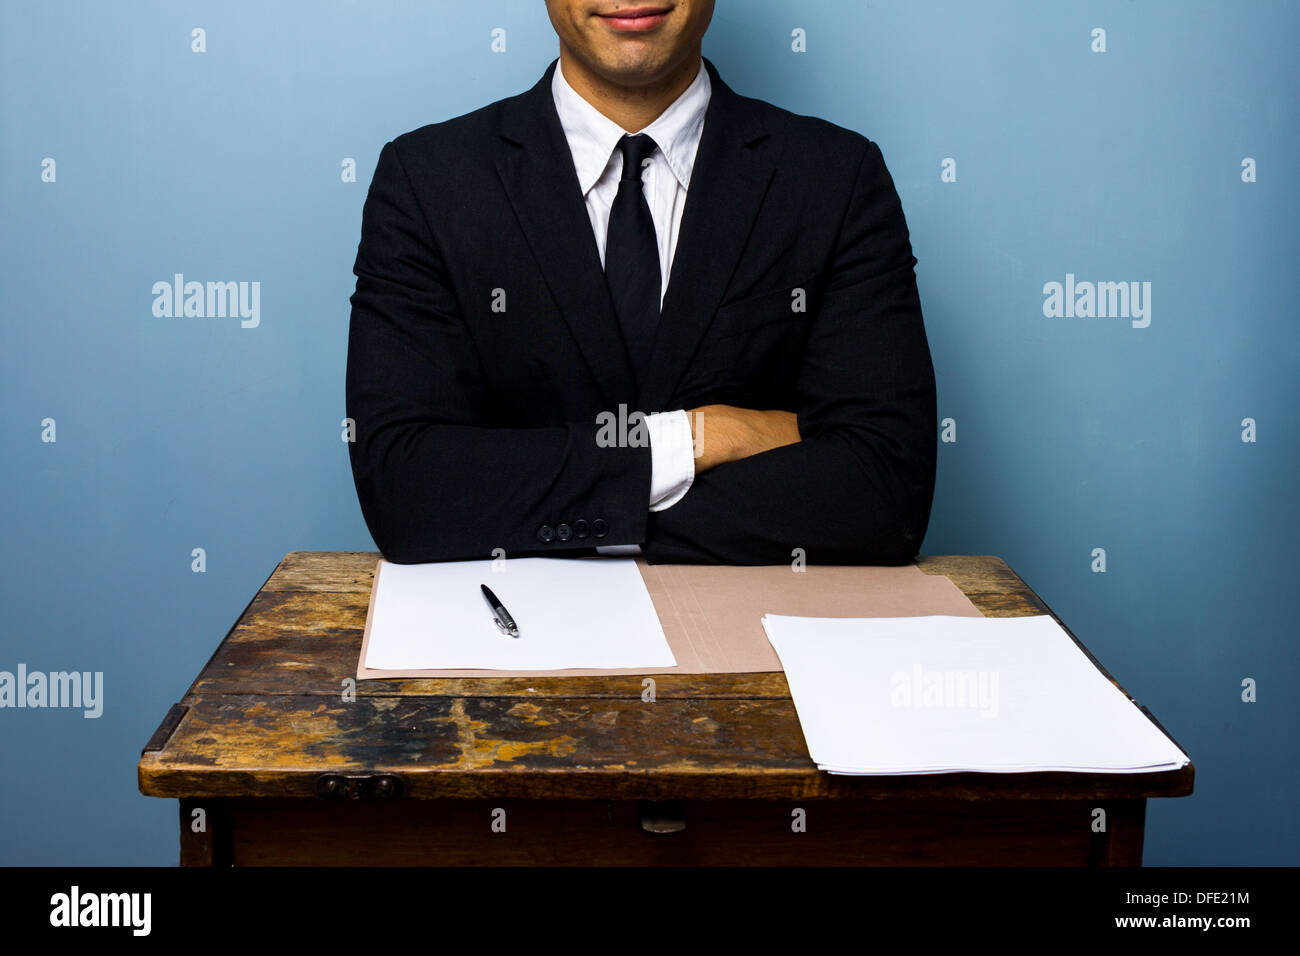 Smiling young businessman has just signed important contract - Stock Image